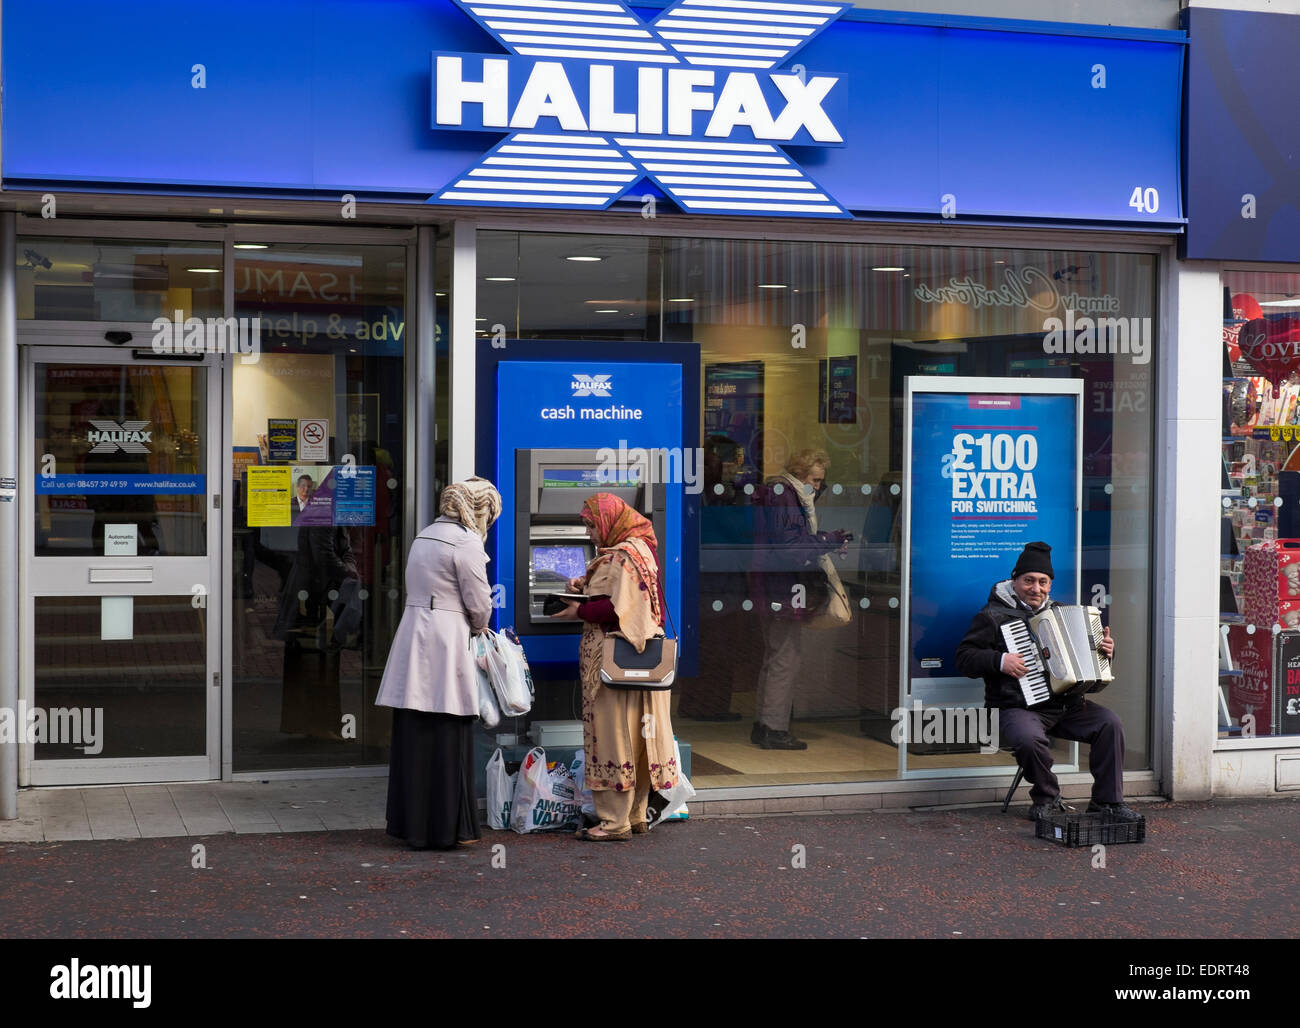 Two female shoppers using a cash machine and a busker with accordion outside Halifax UK bank in Walsall, West Midlands, - Stock Image